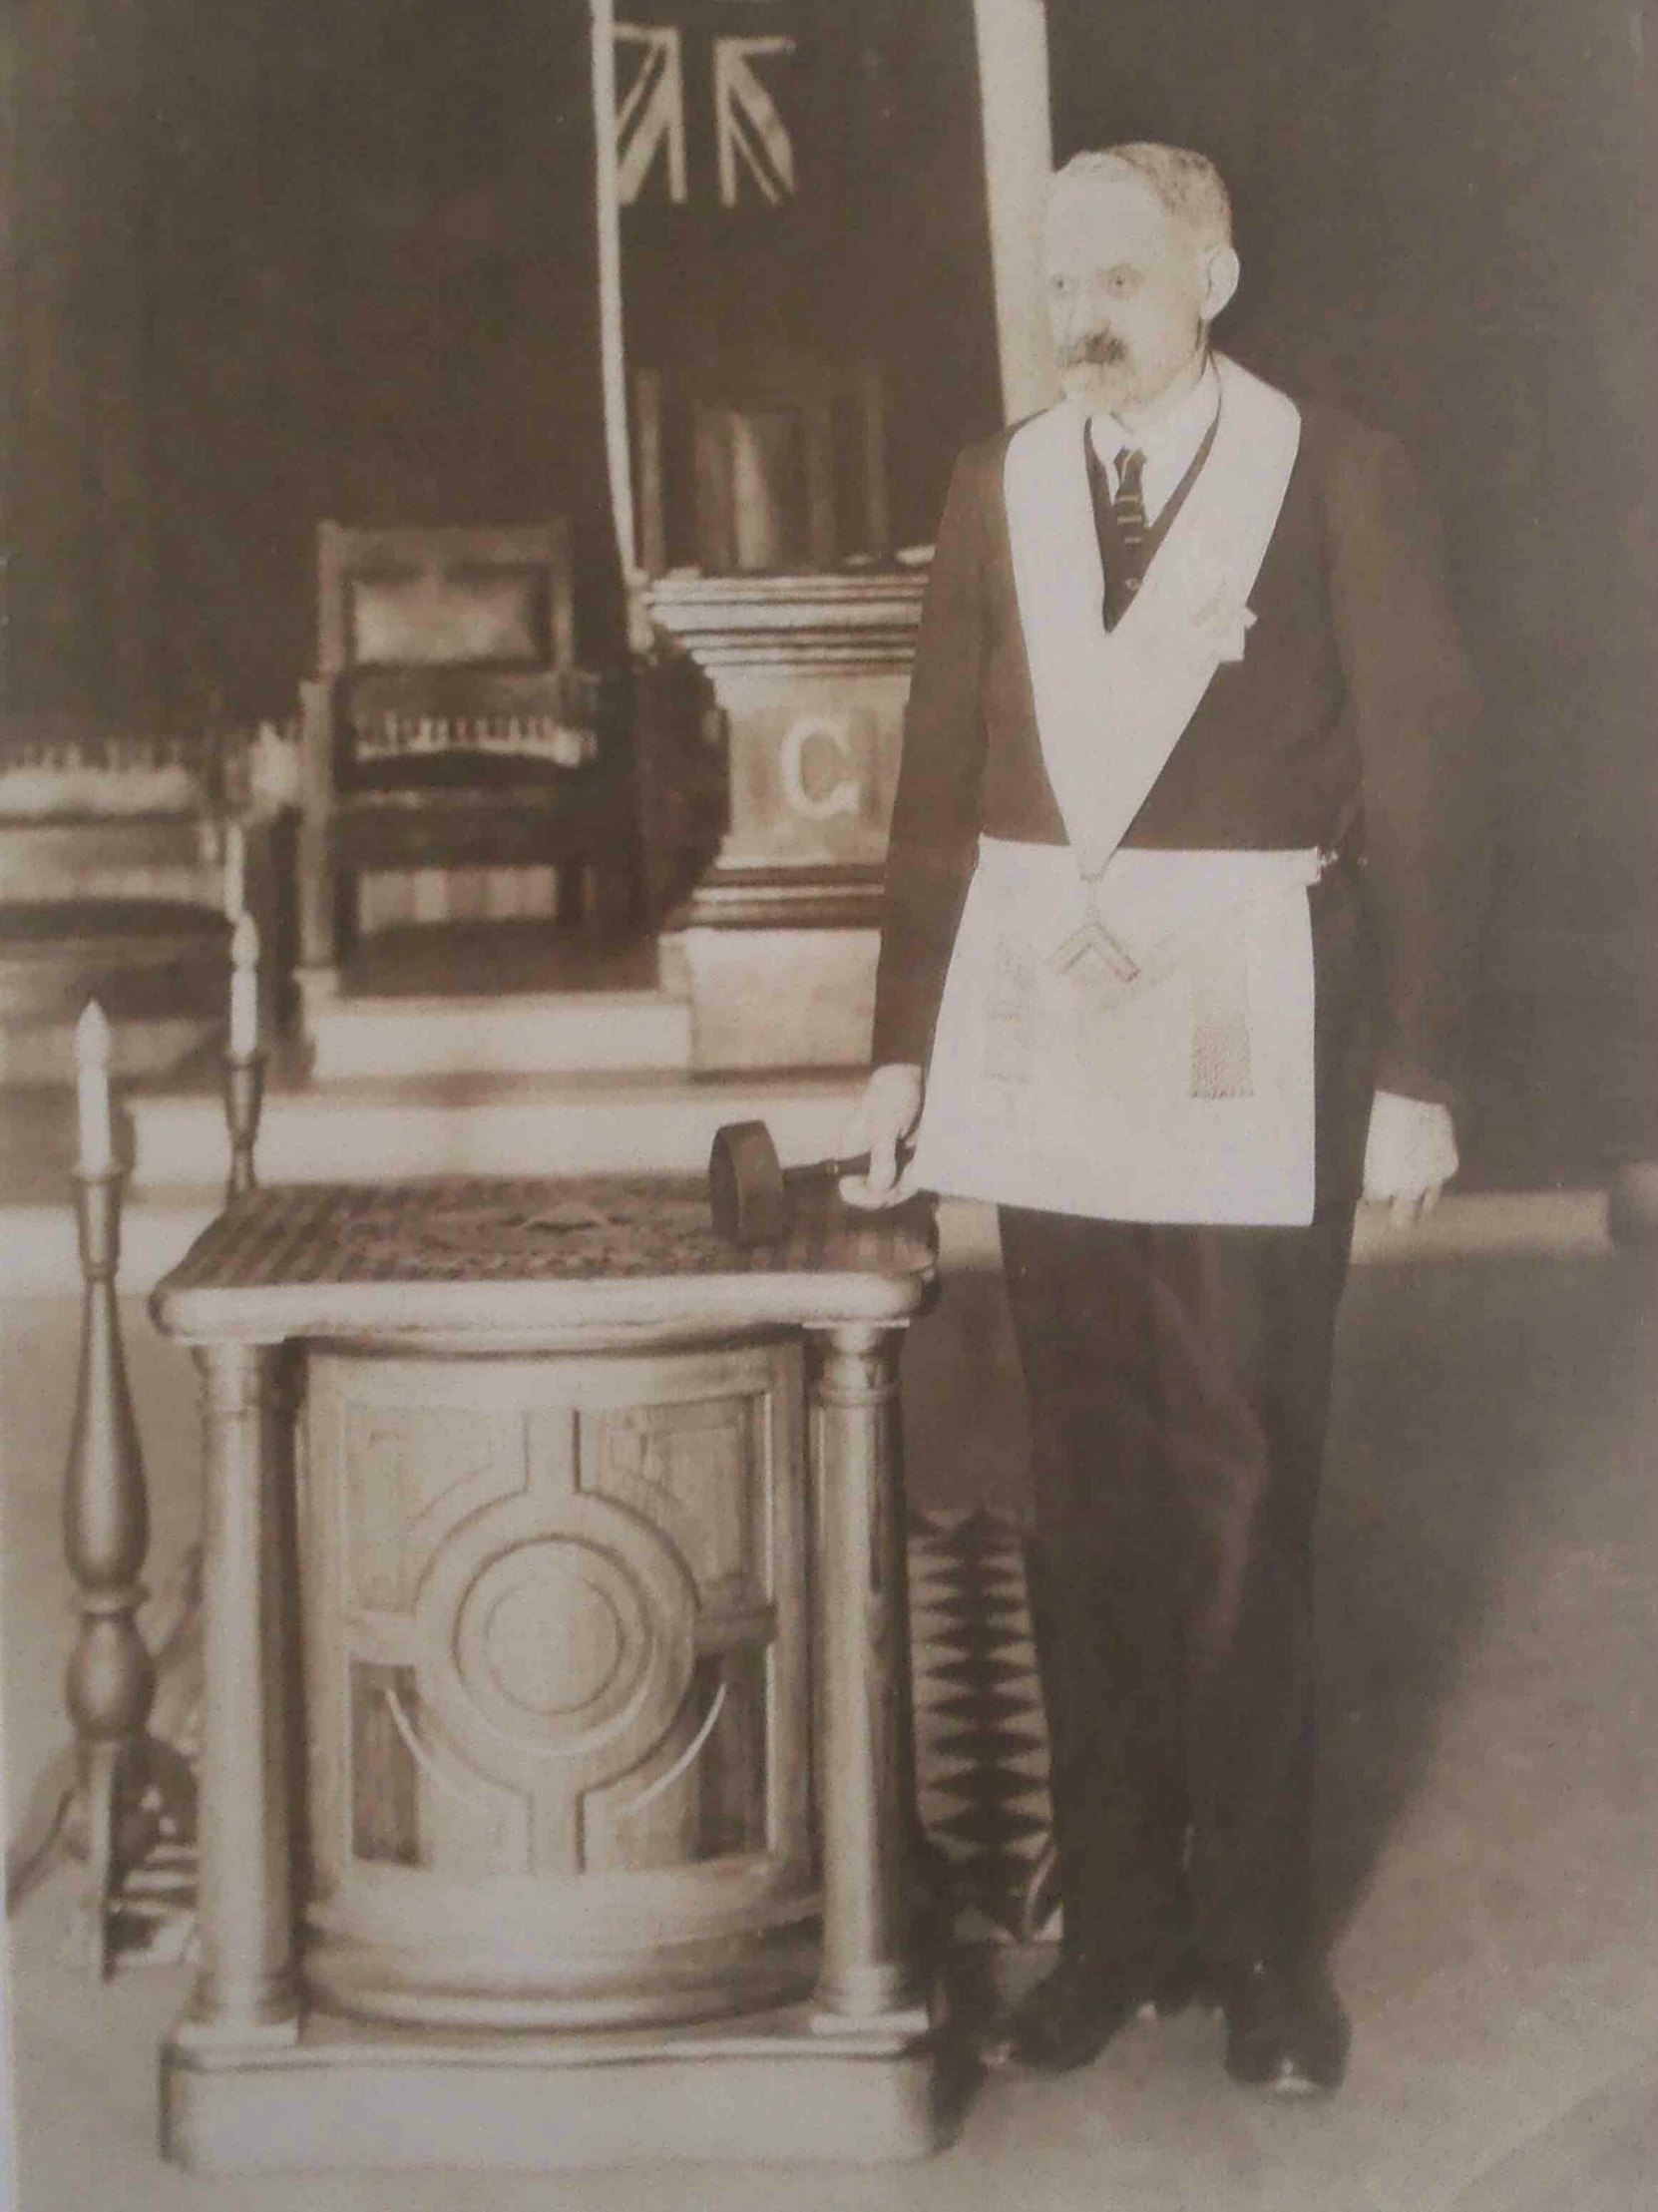 Christopher Dobson in Masonic regalia, circa 1928 (Photo courtesy of Temple Lodge, No.33 A.F.&A.M.)